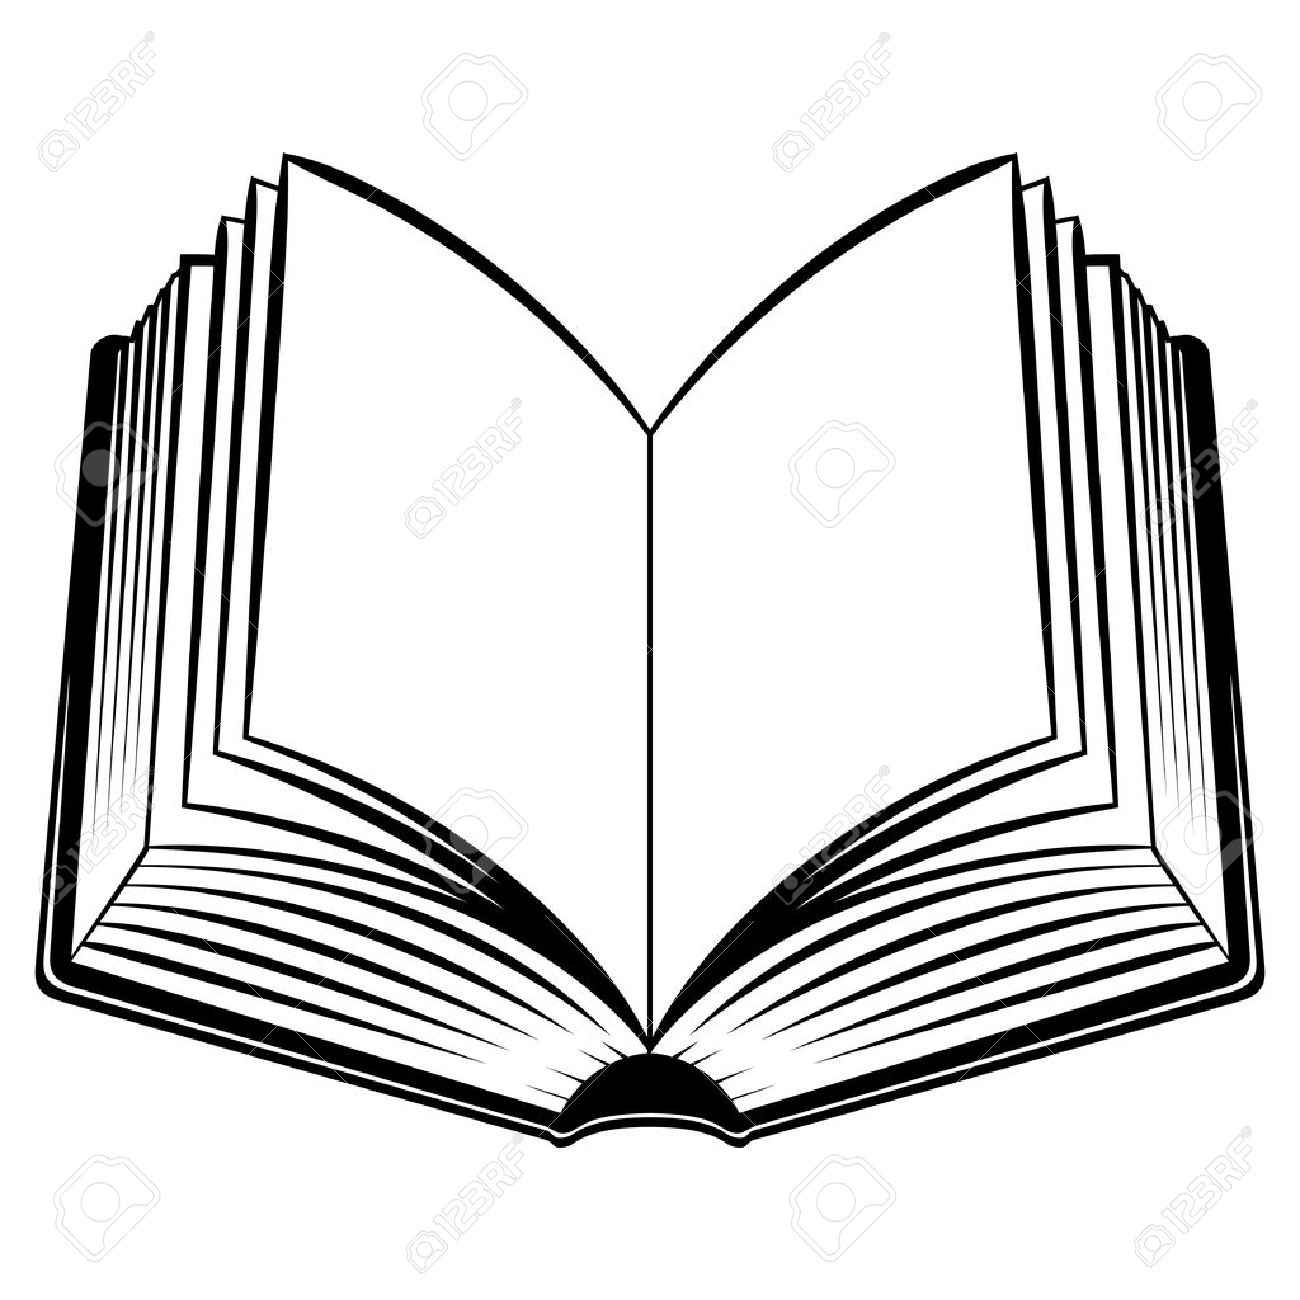 Offenes Buch Clipart 7 Clipart Station